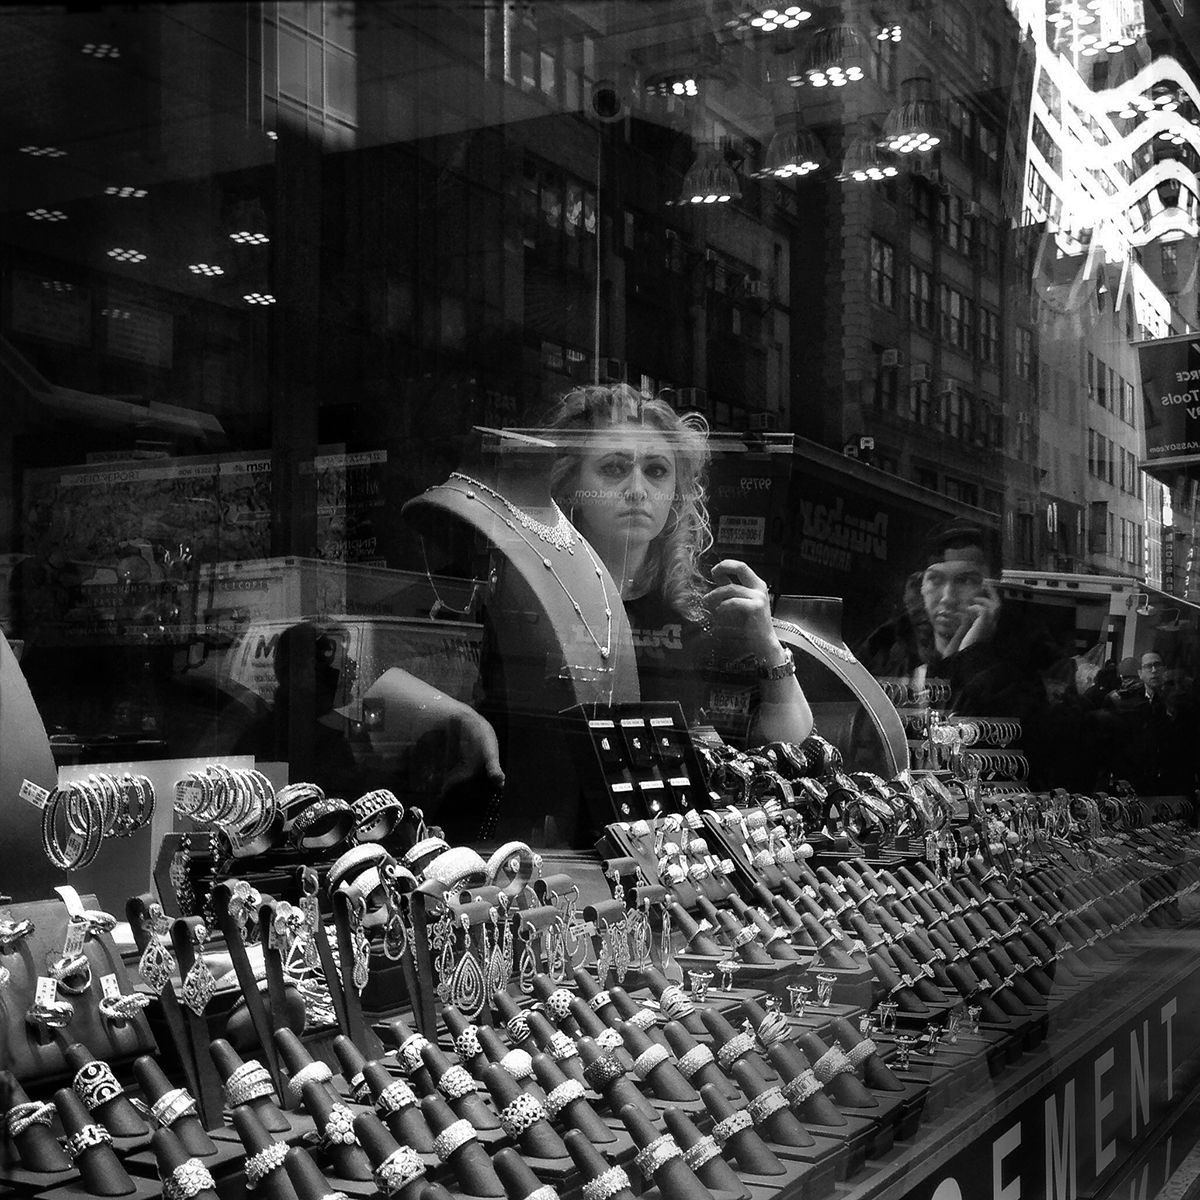 In the window, 47th street,NYC